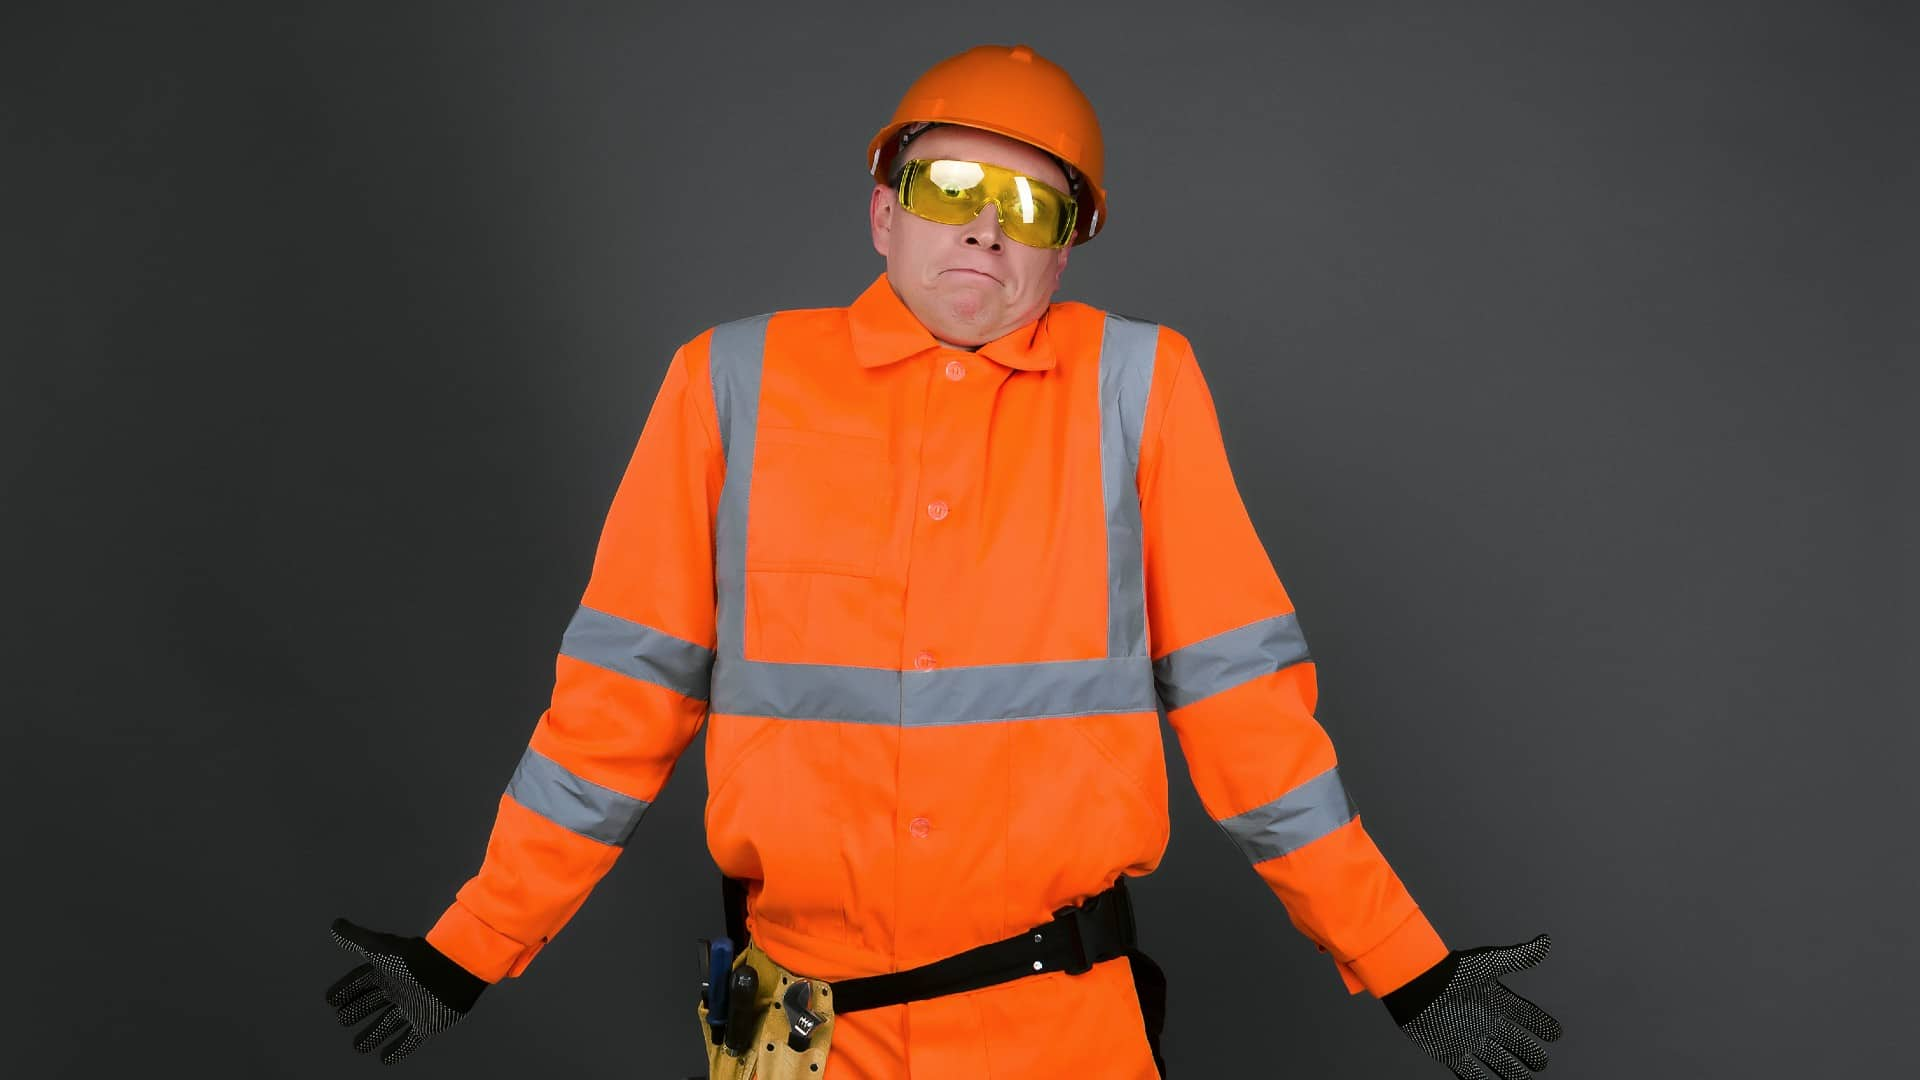 energy asx share price flat represented by worker in hi vis gear shrugging